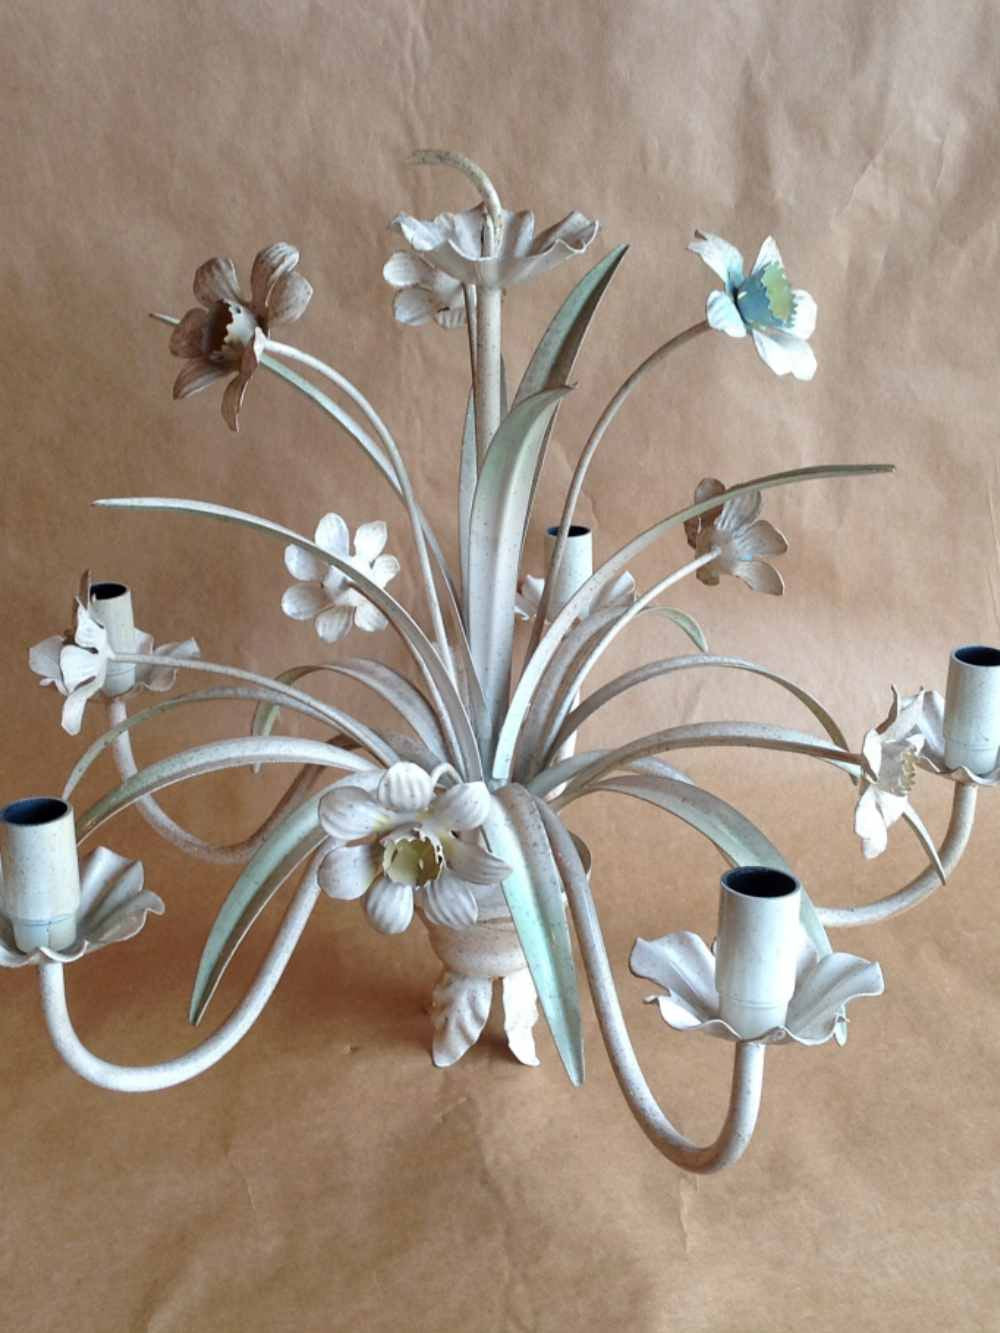 ... Vintage Tole Chandelier With Daffodils - Mercato Antiques - 1 - Floral Vintage Italian Tole Chandelier MERCATO Antiques